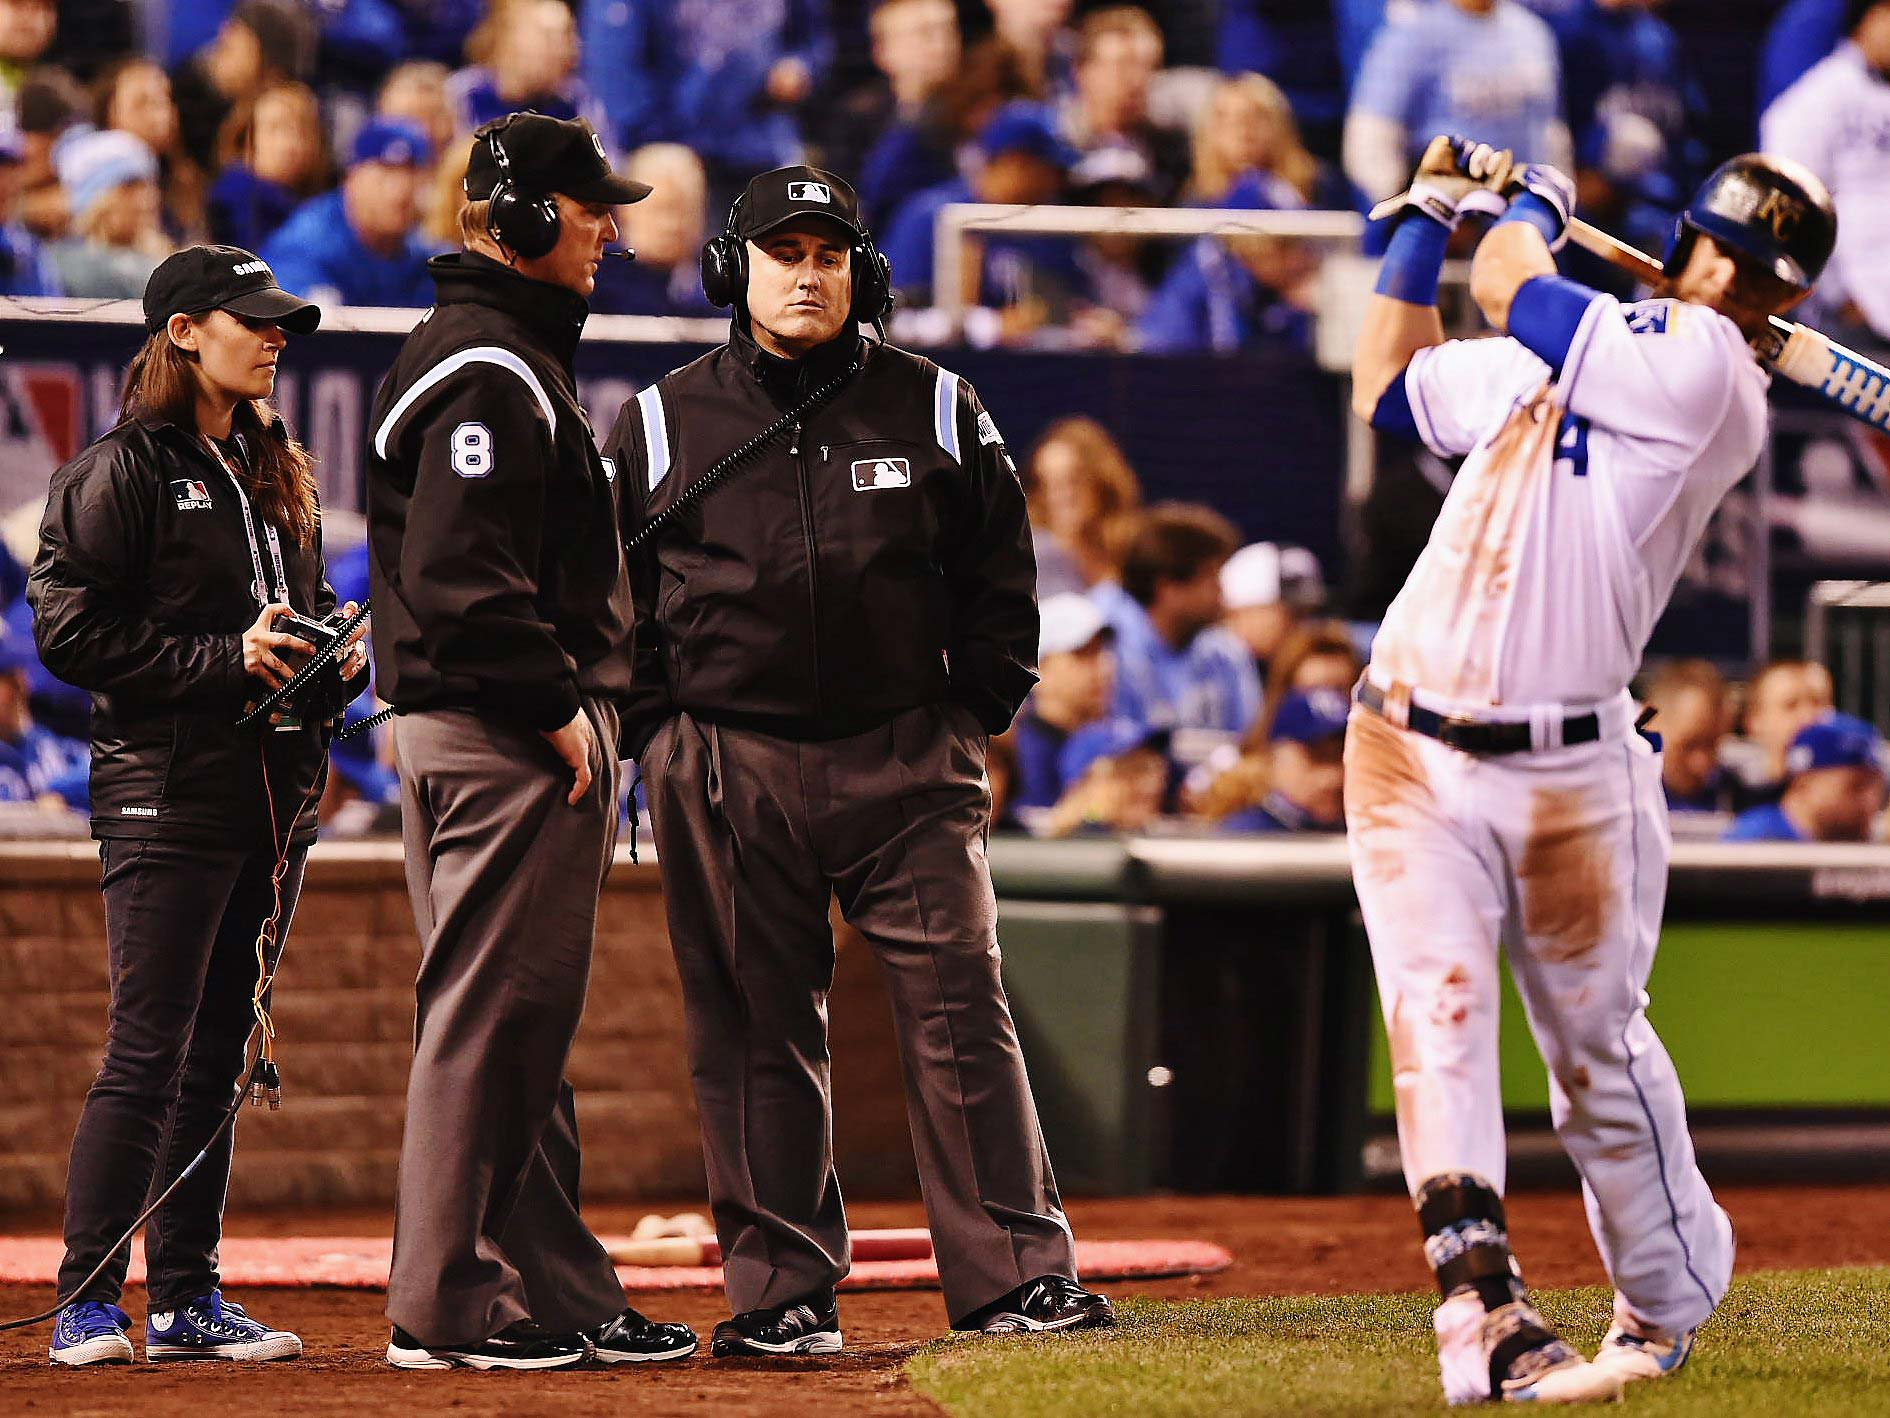 The officials await a replay ruling from the command center in New York on a close play at first. The call was reversed, resulting in an out.